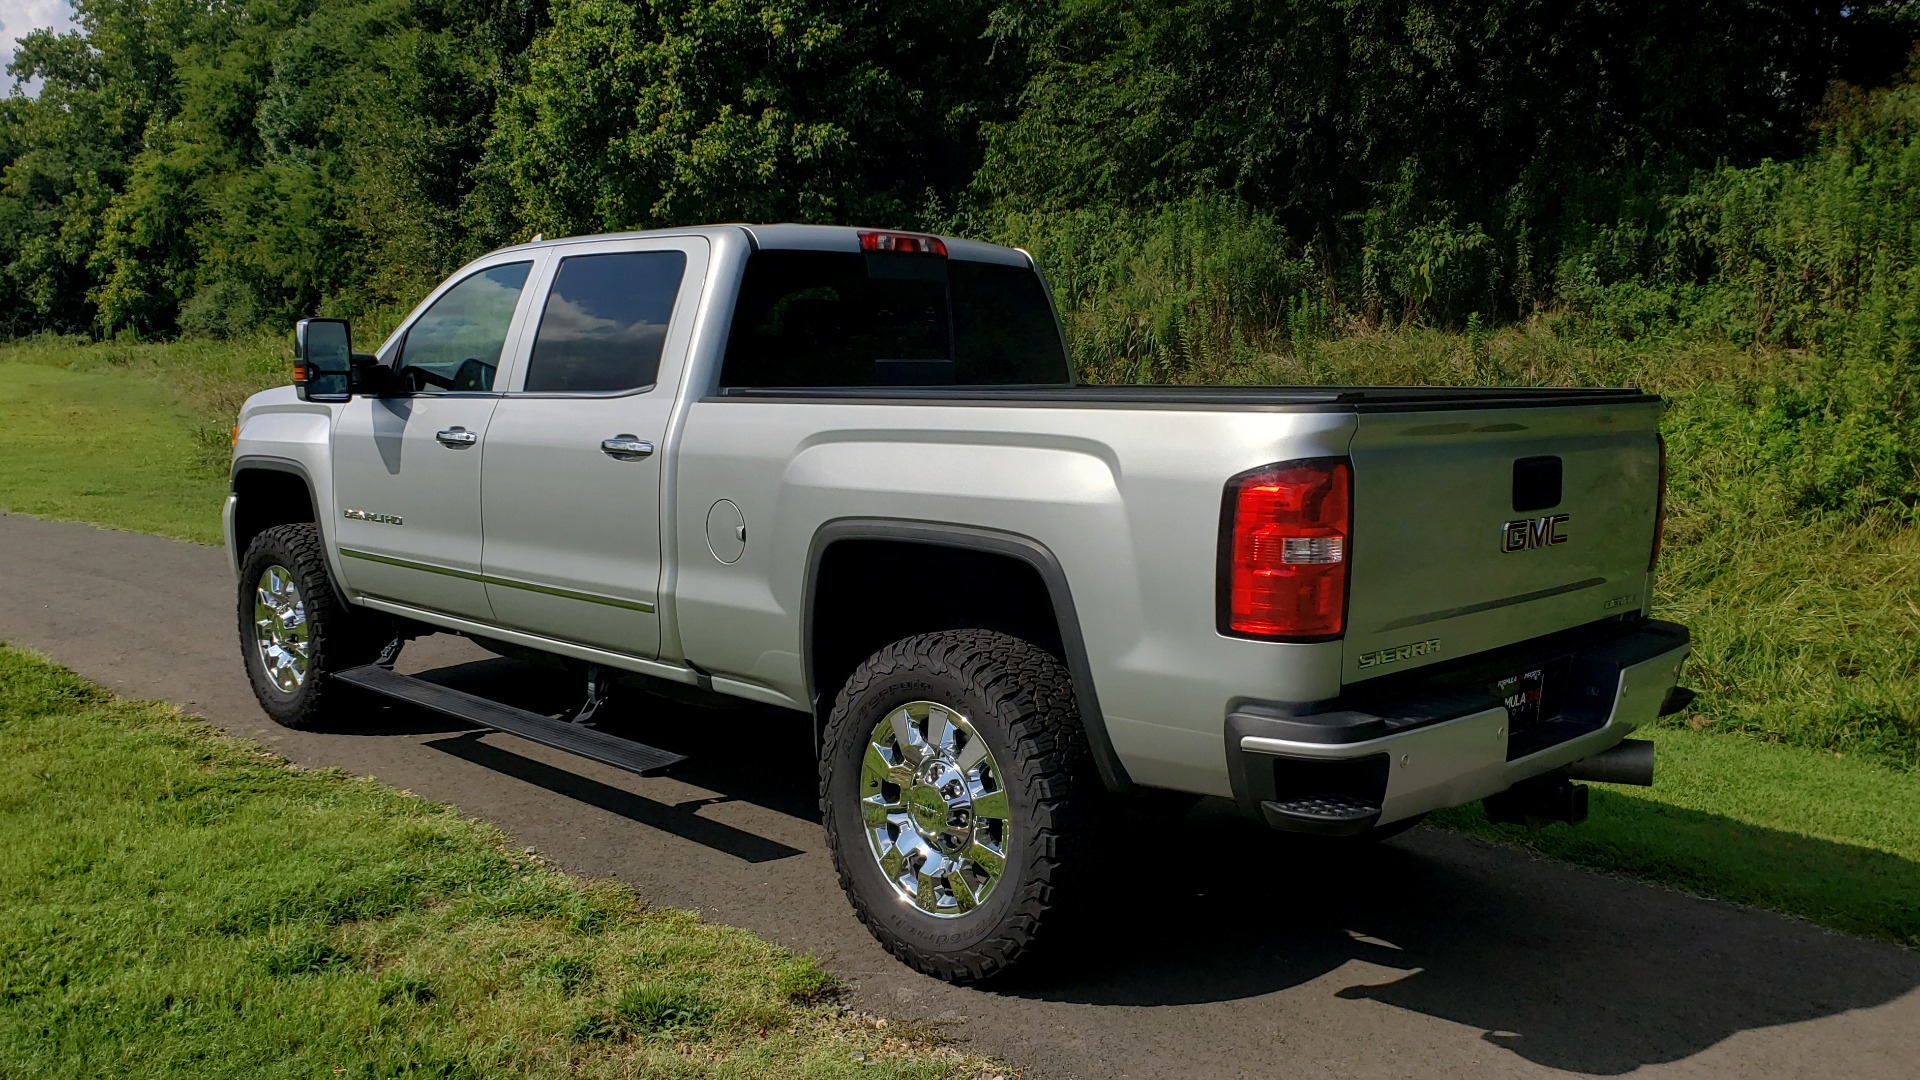 Used 2018 GMC SIERRA 2500HD DENALI 4WD / 6.6L DURAMAX / NAV / SUNROOF / BOSE / REARVIEW for sale Sold at Formula Imports in Charlotte NC 28227 4